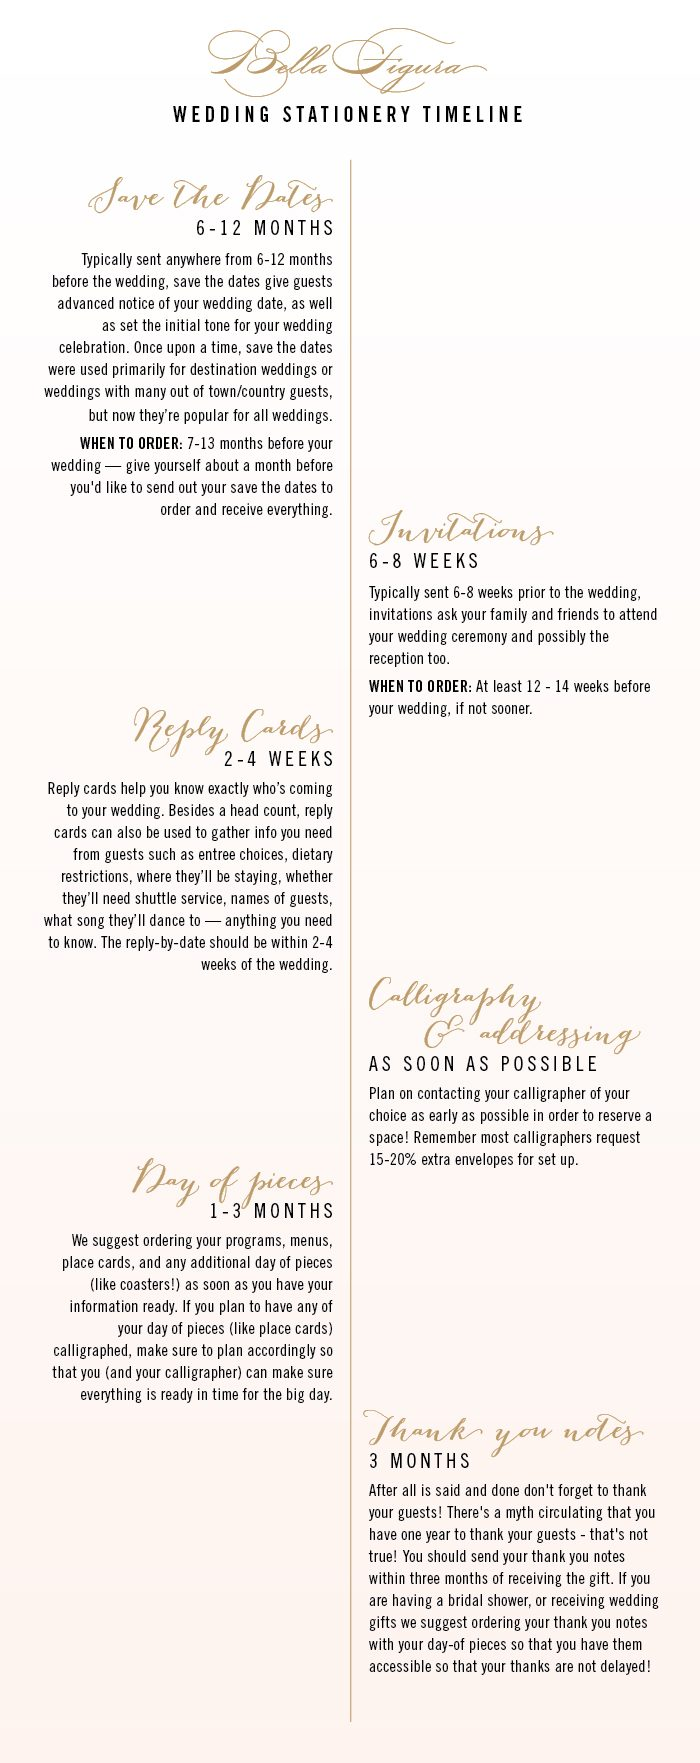 A wedding stationery timeline from Bella Figura shows when to order your wedding invitations, save the dates, and more